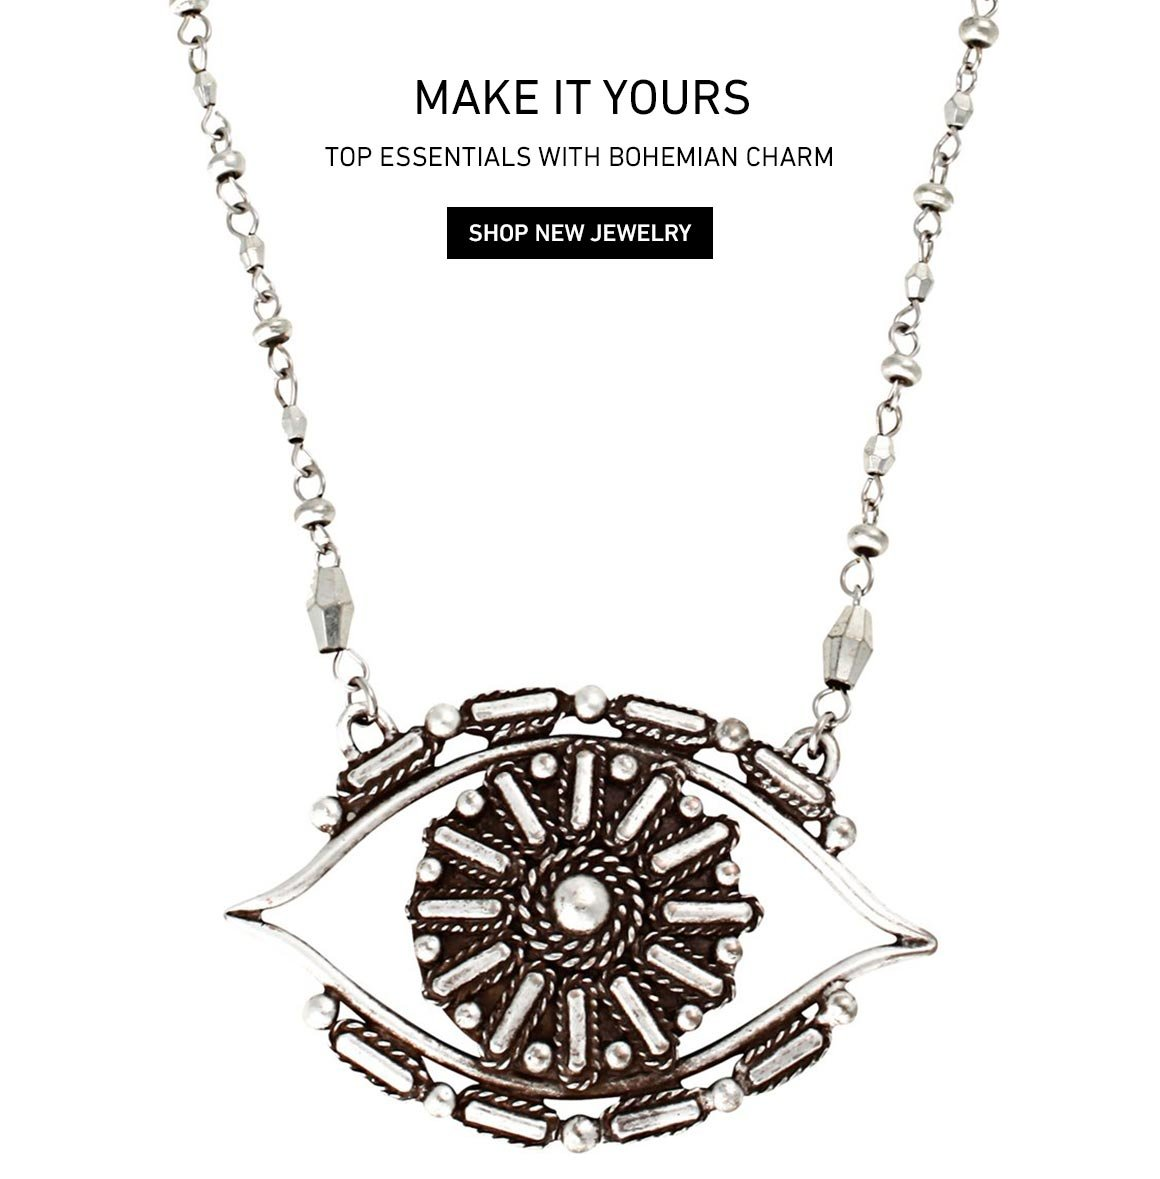 Make It Yours: Shop New Jewelry